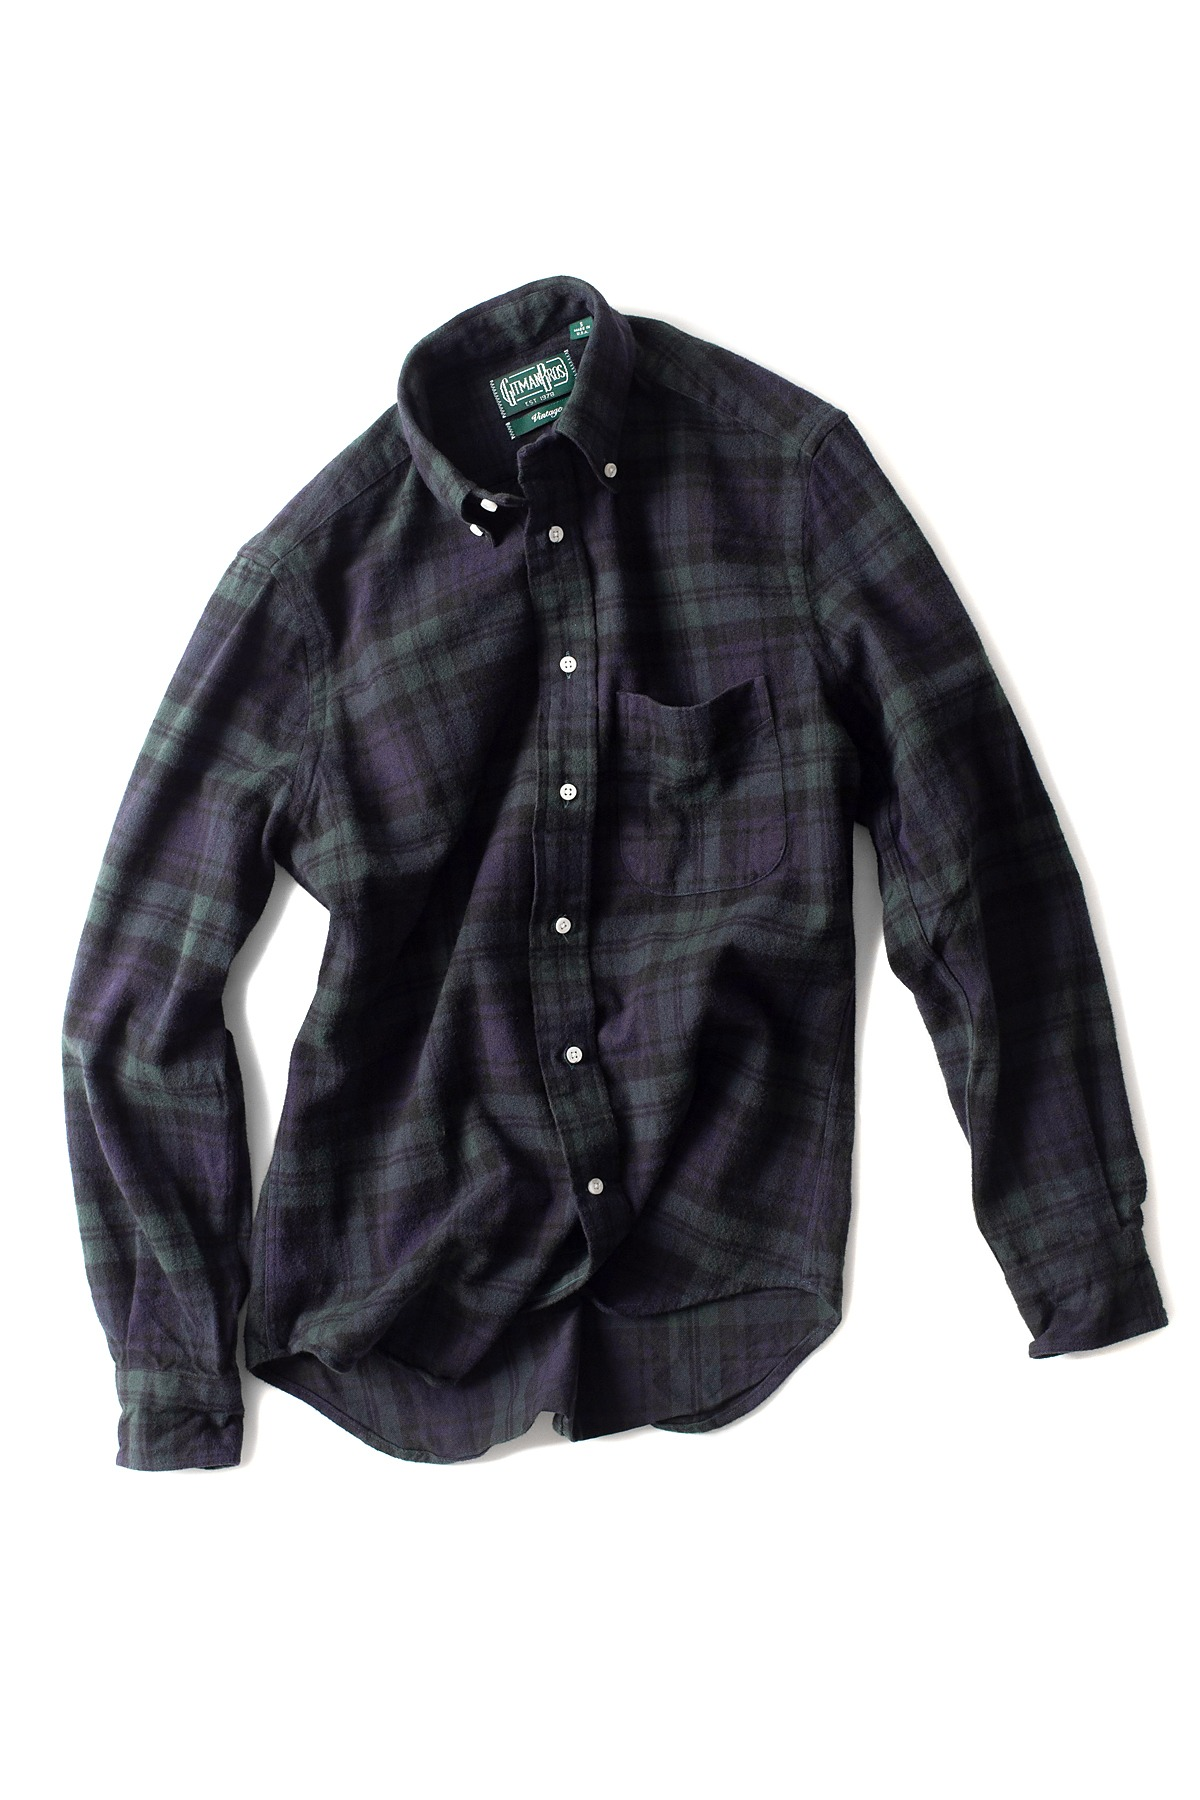 GITMANBROS : Vintage Button Down Shirt (M.Green)